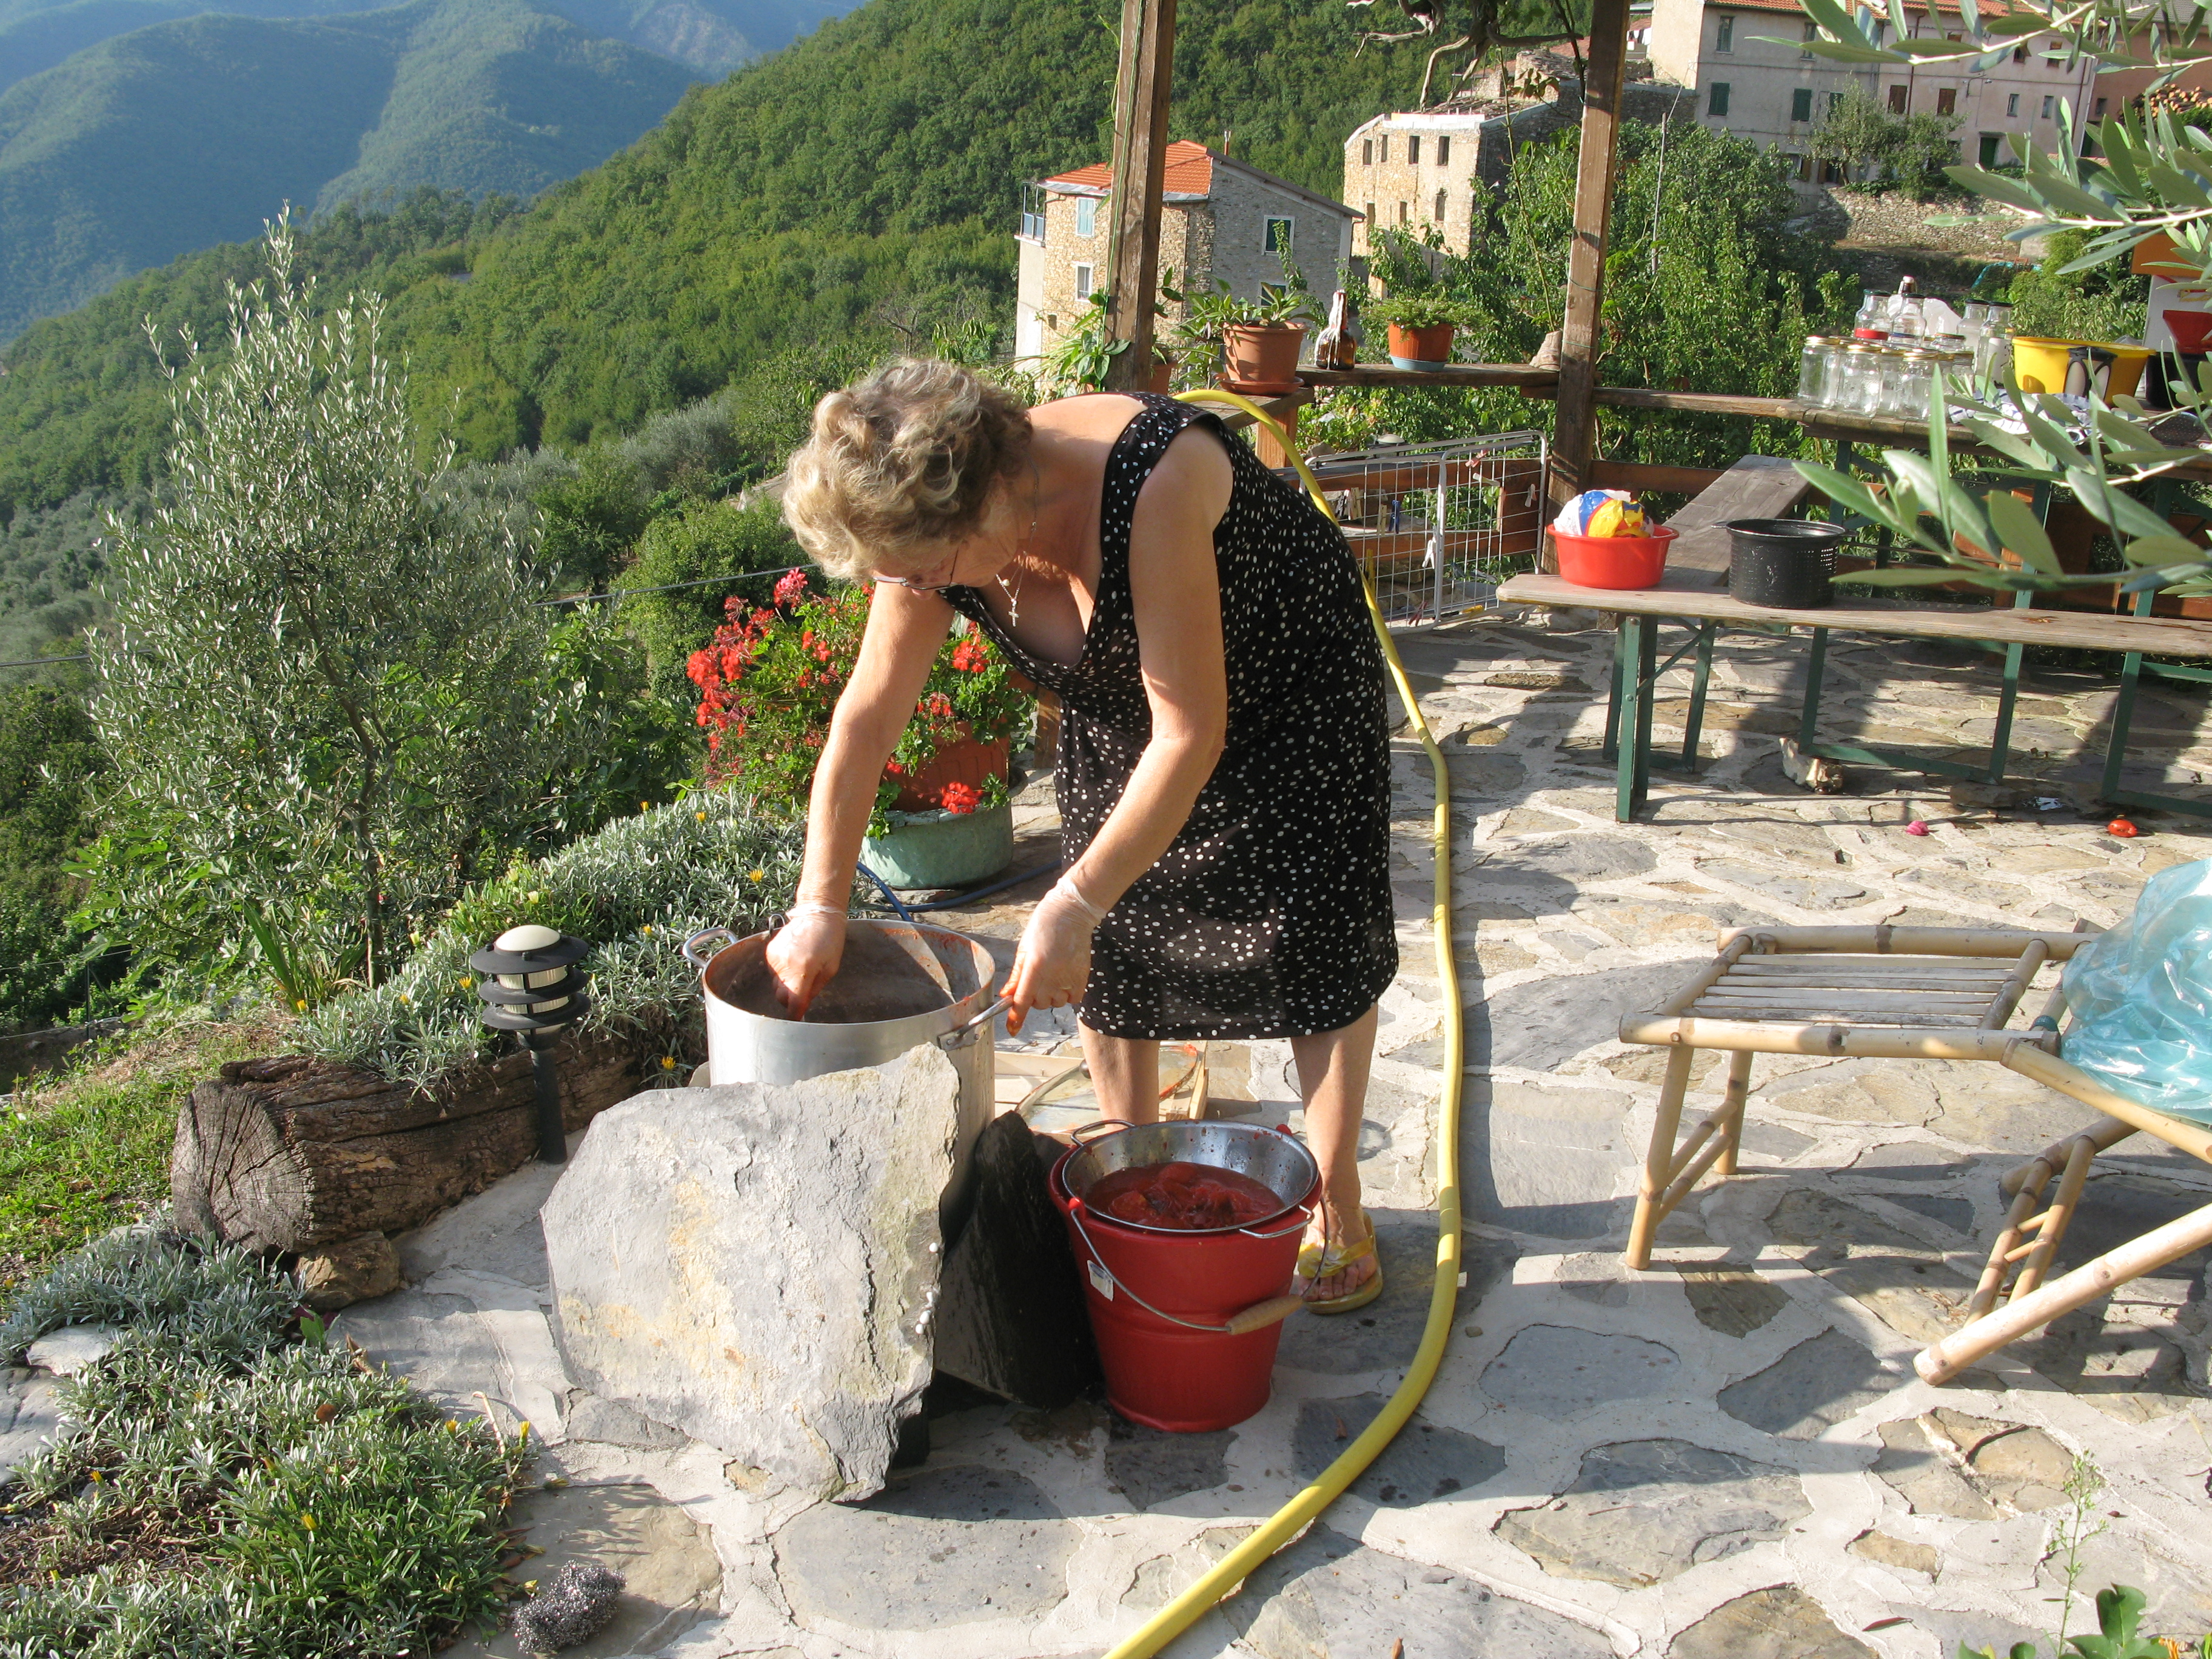 Nonna outside working on a batch of red sauce.